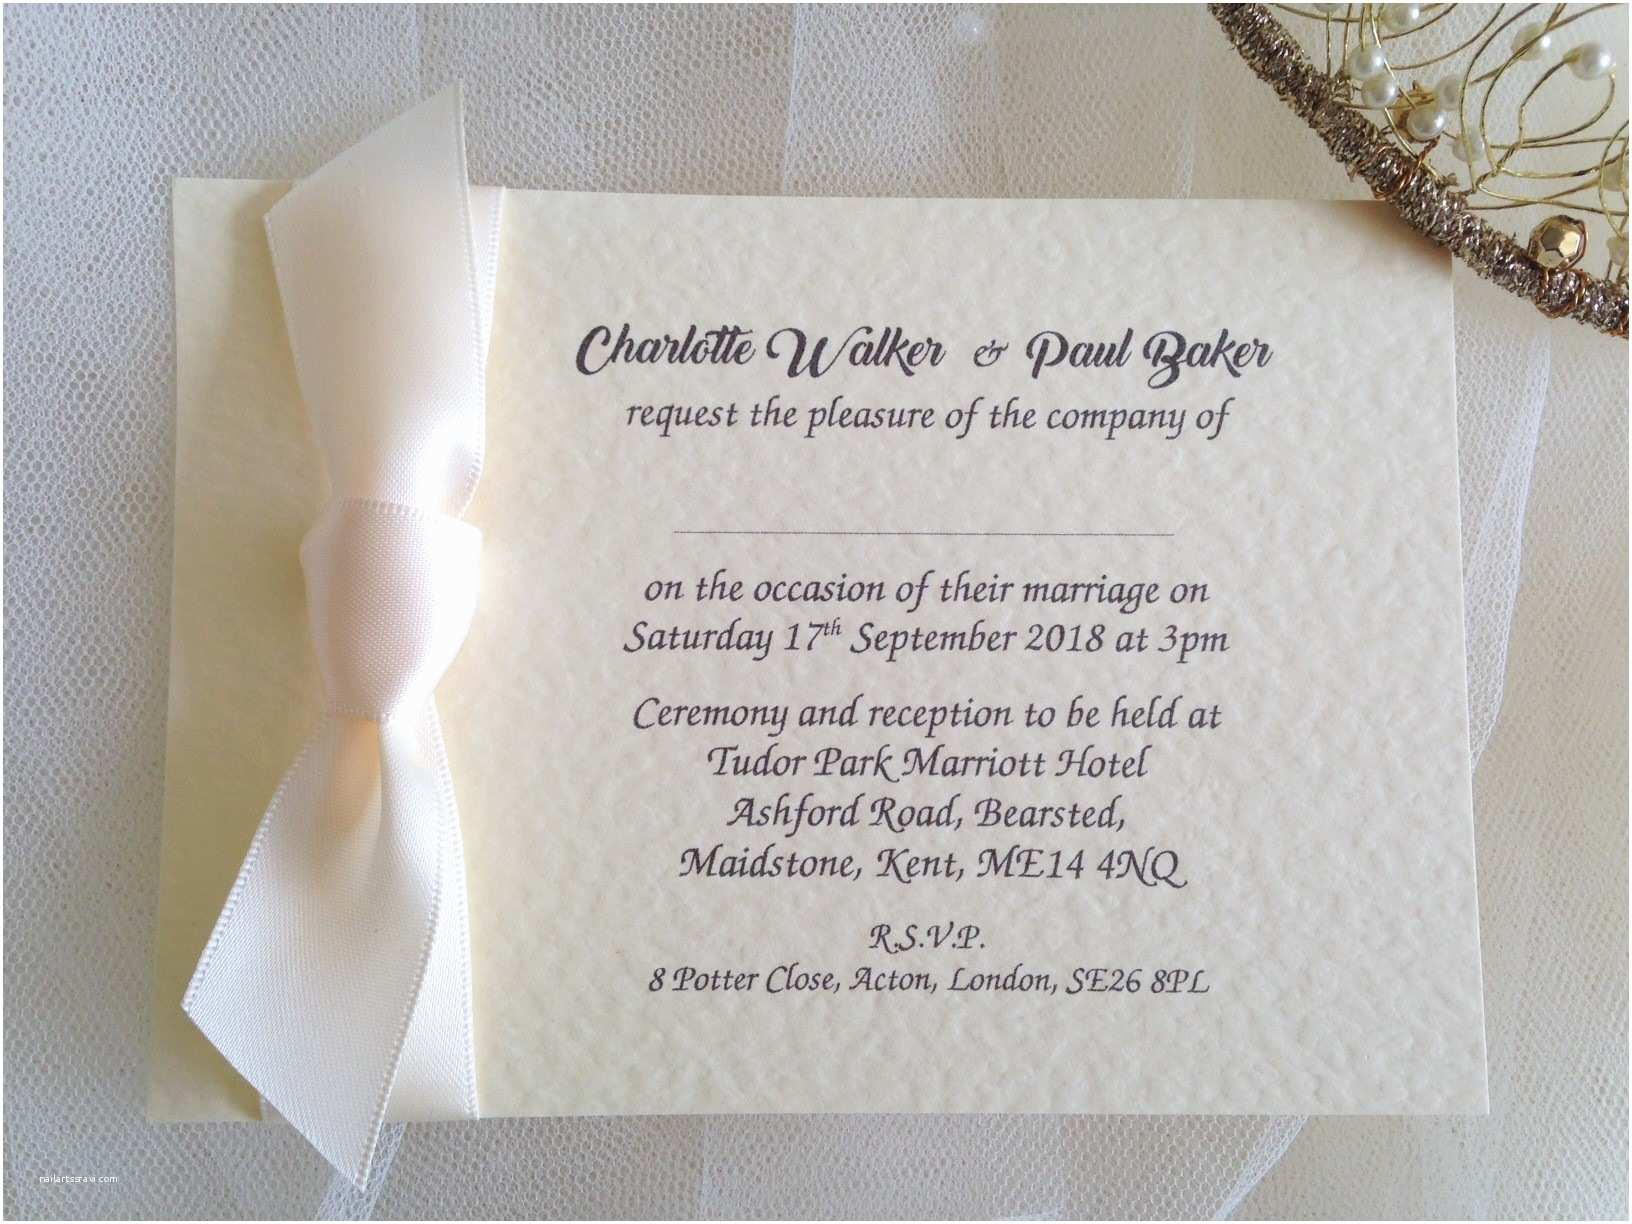 Inexpensive Wedding Invitation Packages Invitations Inexpensive Wedding Invitations for Fancy